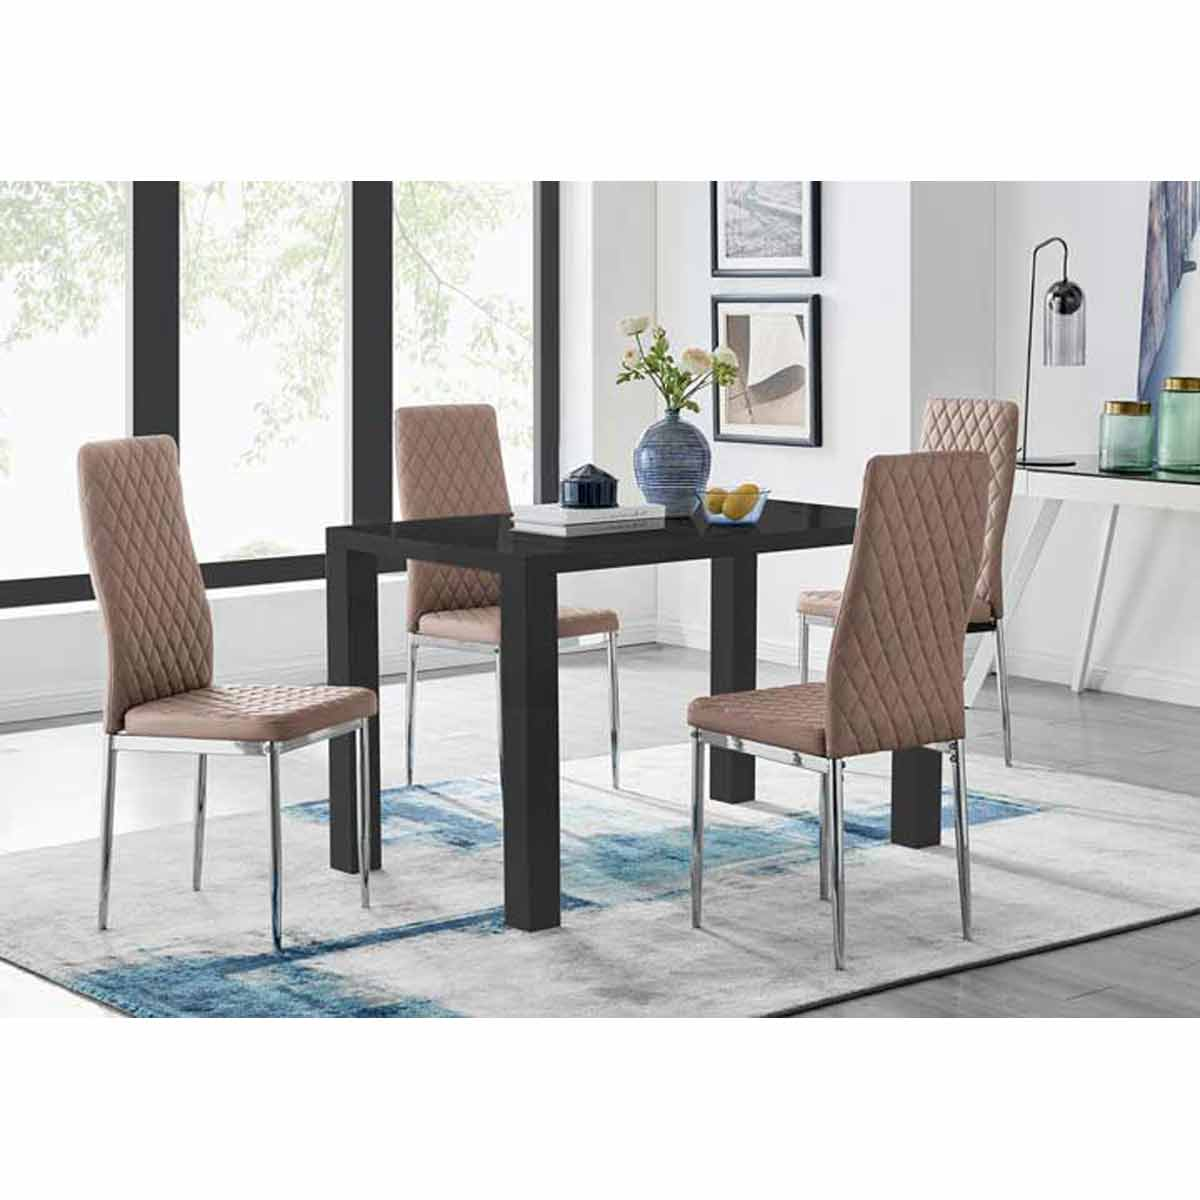 Furniture Box Pivero Black High Gloss Dining Table and 4 Cappuccino Milan Chairs Set